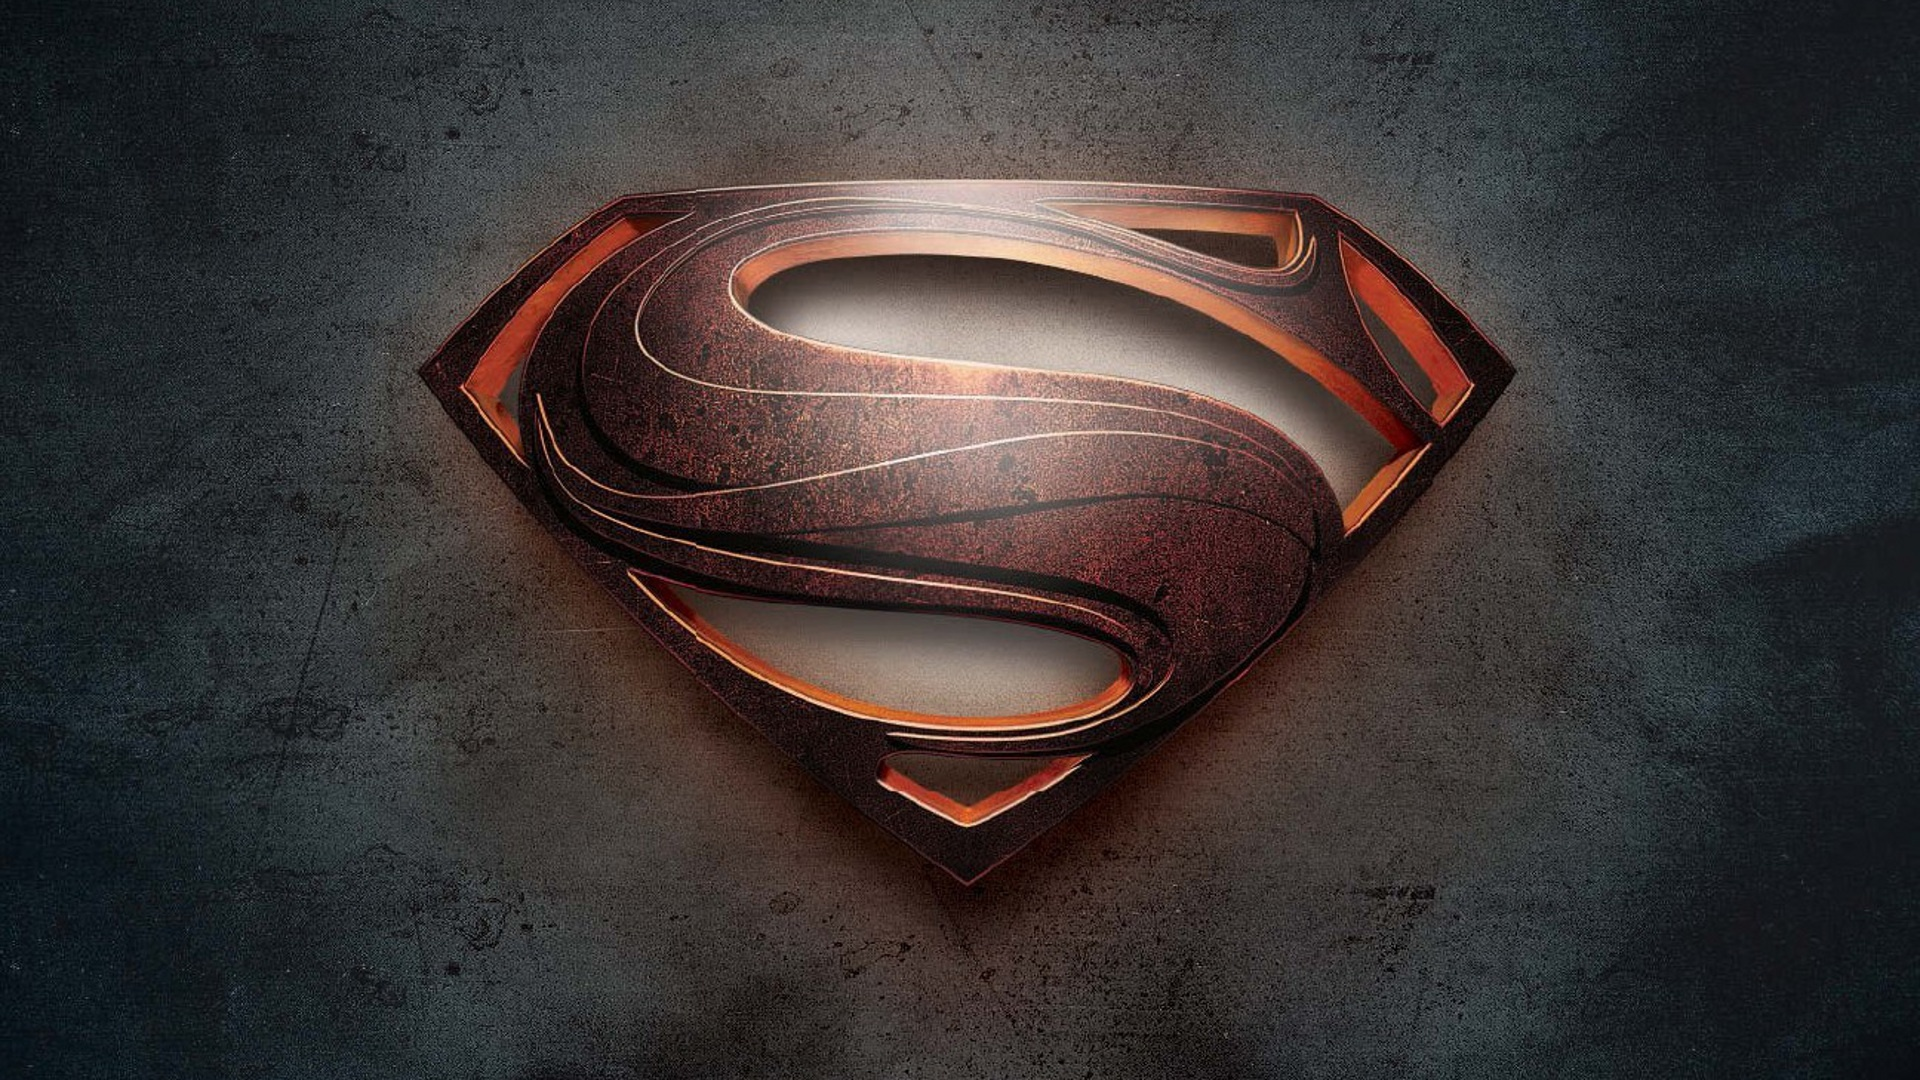 Man of steel full hd wallpaper and background image - Man wallpaper ...